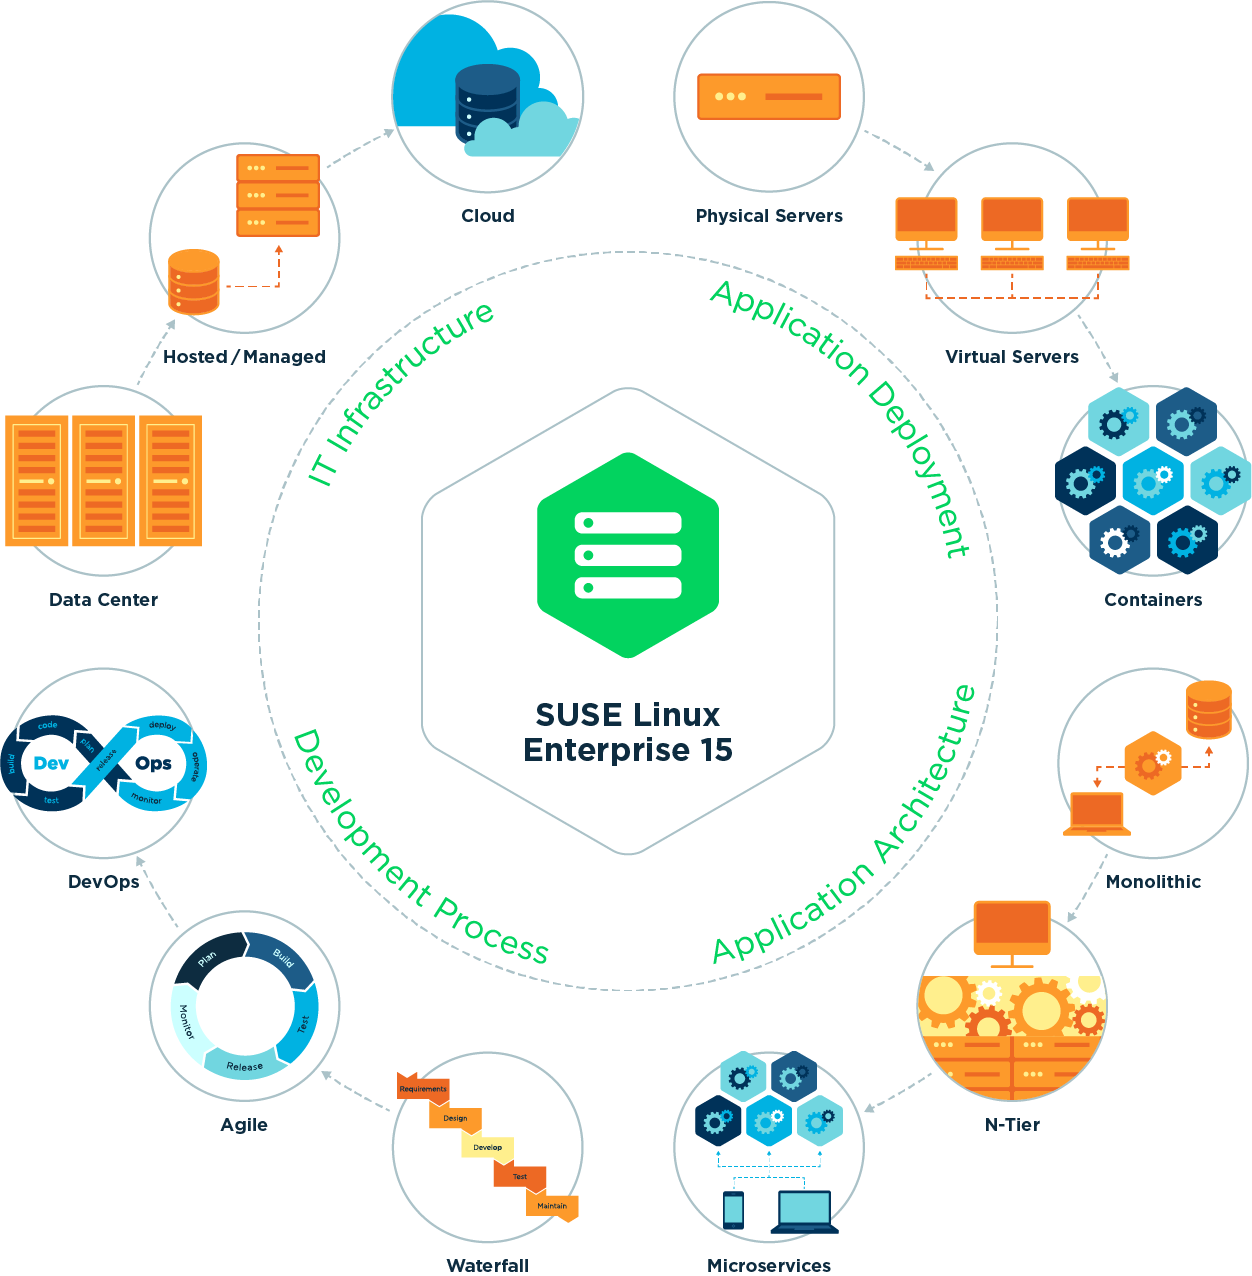 Multimodal IT, SUSE Linux Enterprise 15